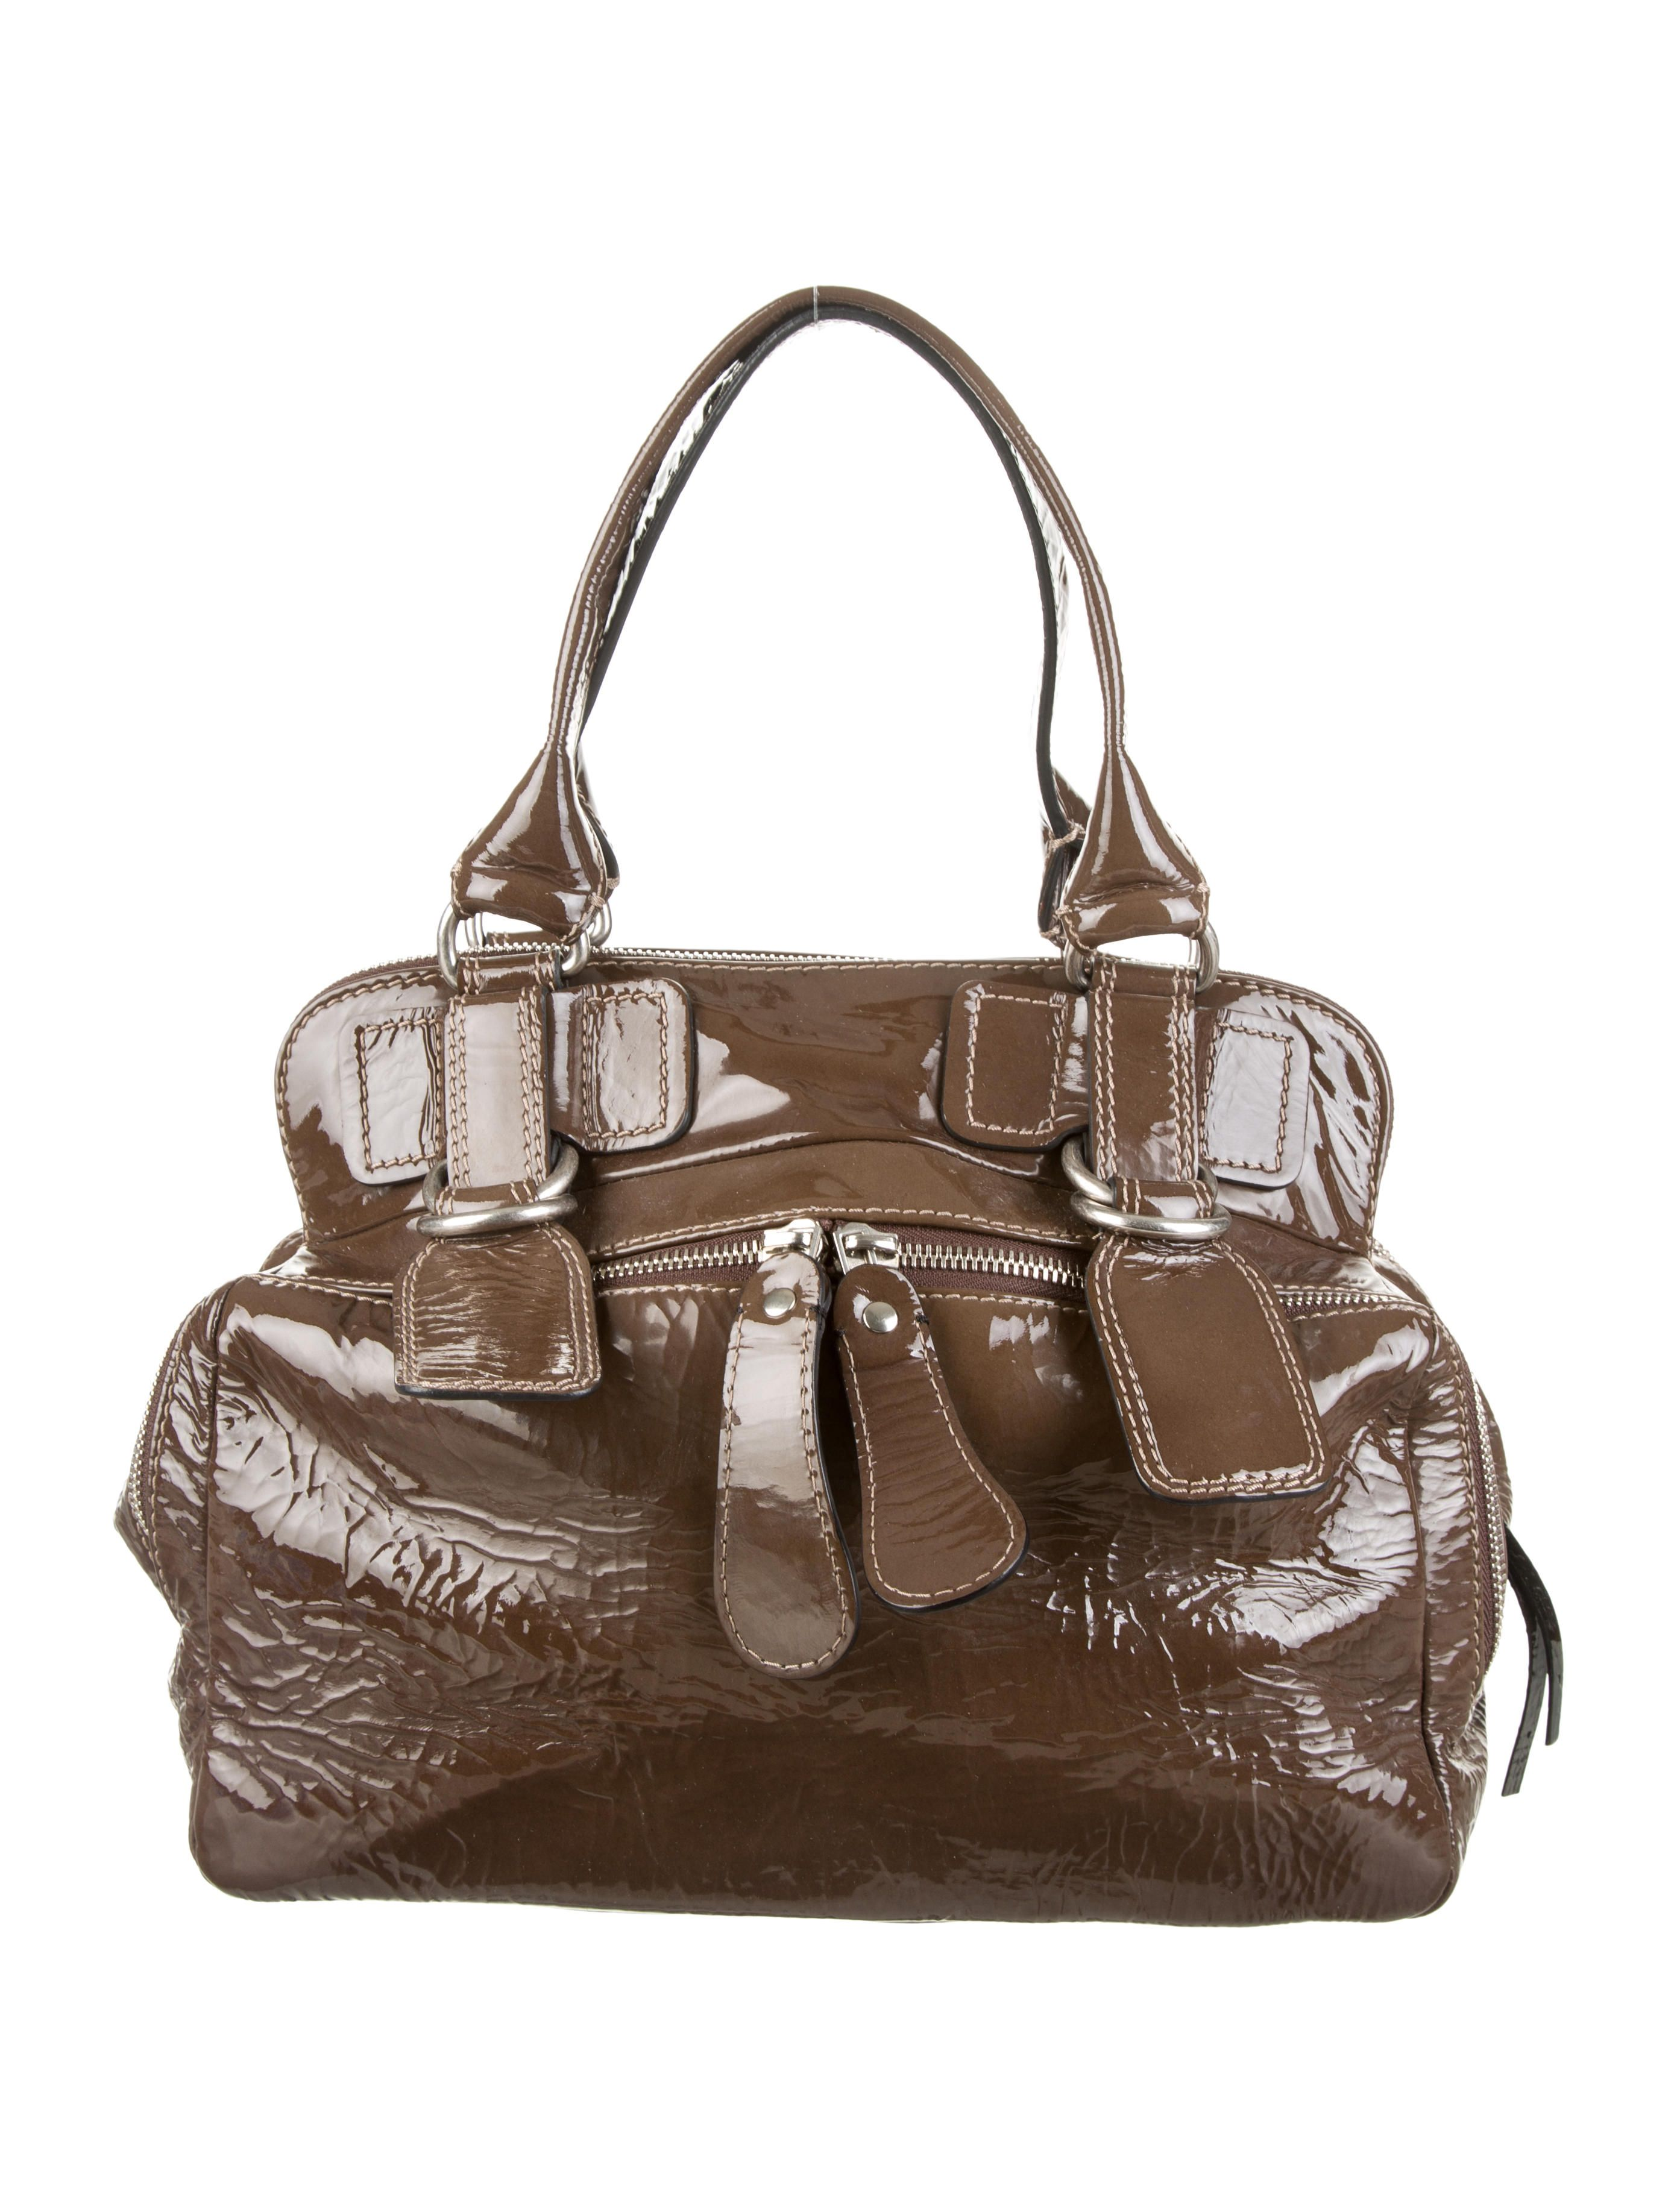 0ed6e4ec0a Olive brown patent leather chloé bay bag with silver tone hardware dual  exterior zip jpg 2782x3670